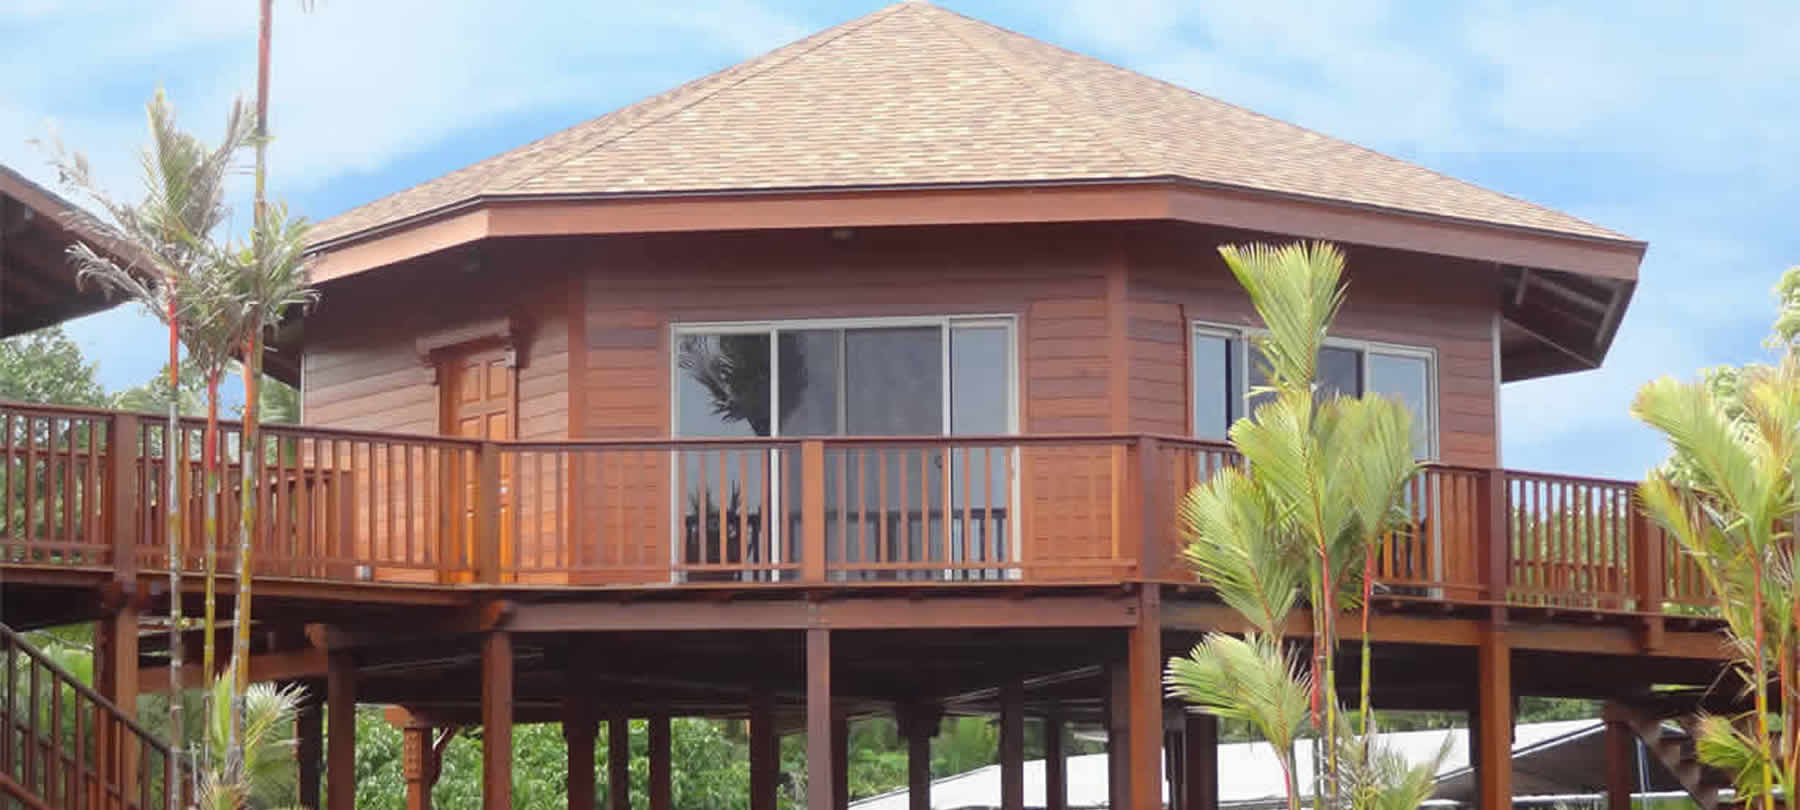 Why build a prefab tropical hardwood timber home teak bali for Bali style homes to build